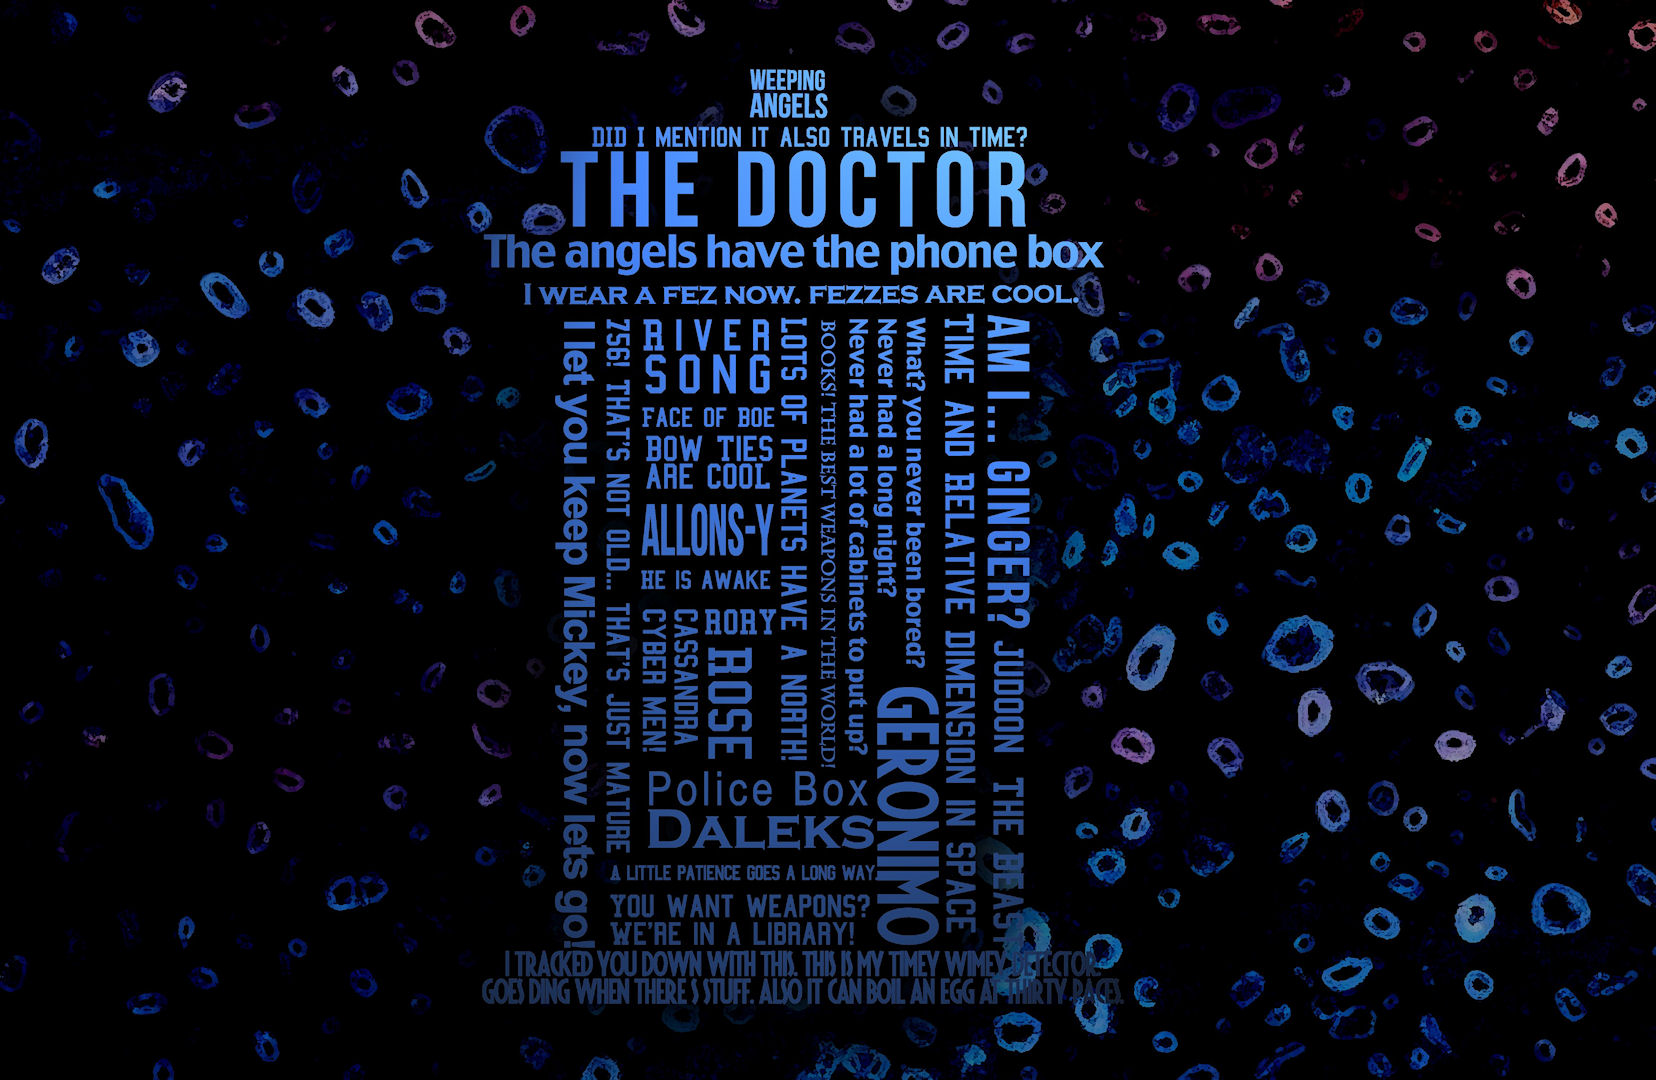 doctor-who-the-doctor-tardis-time-travel-humor-quotes2.jpg